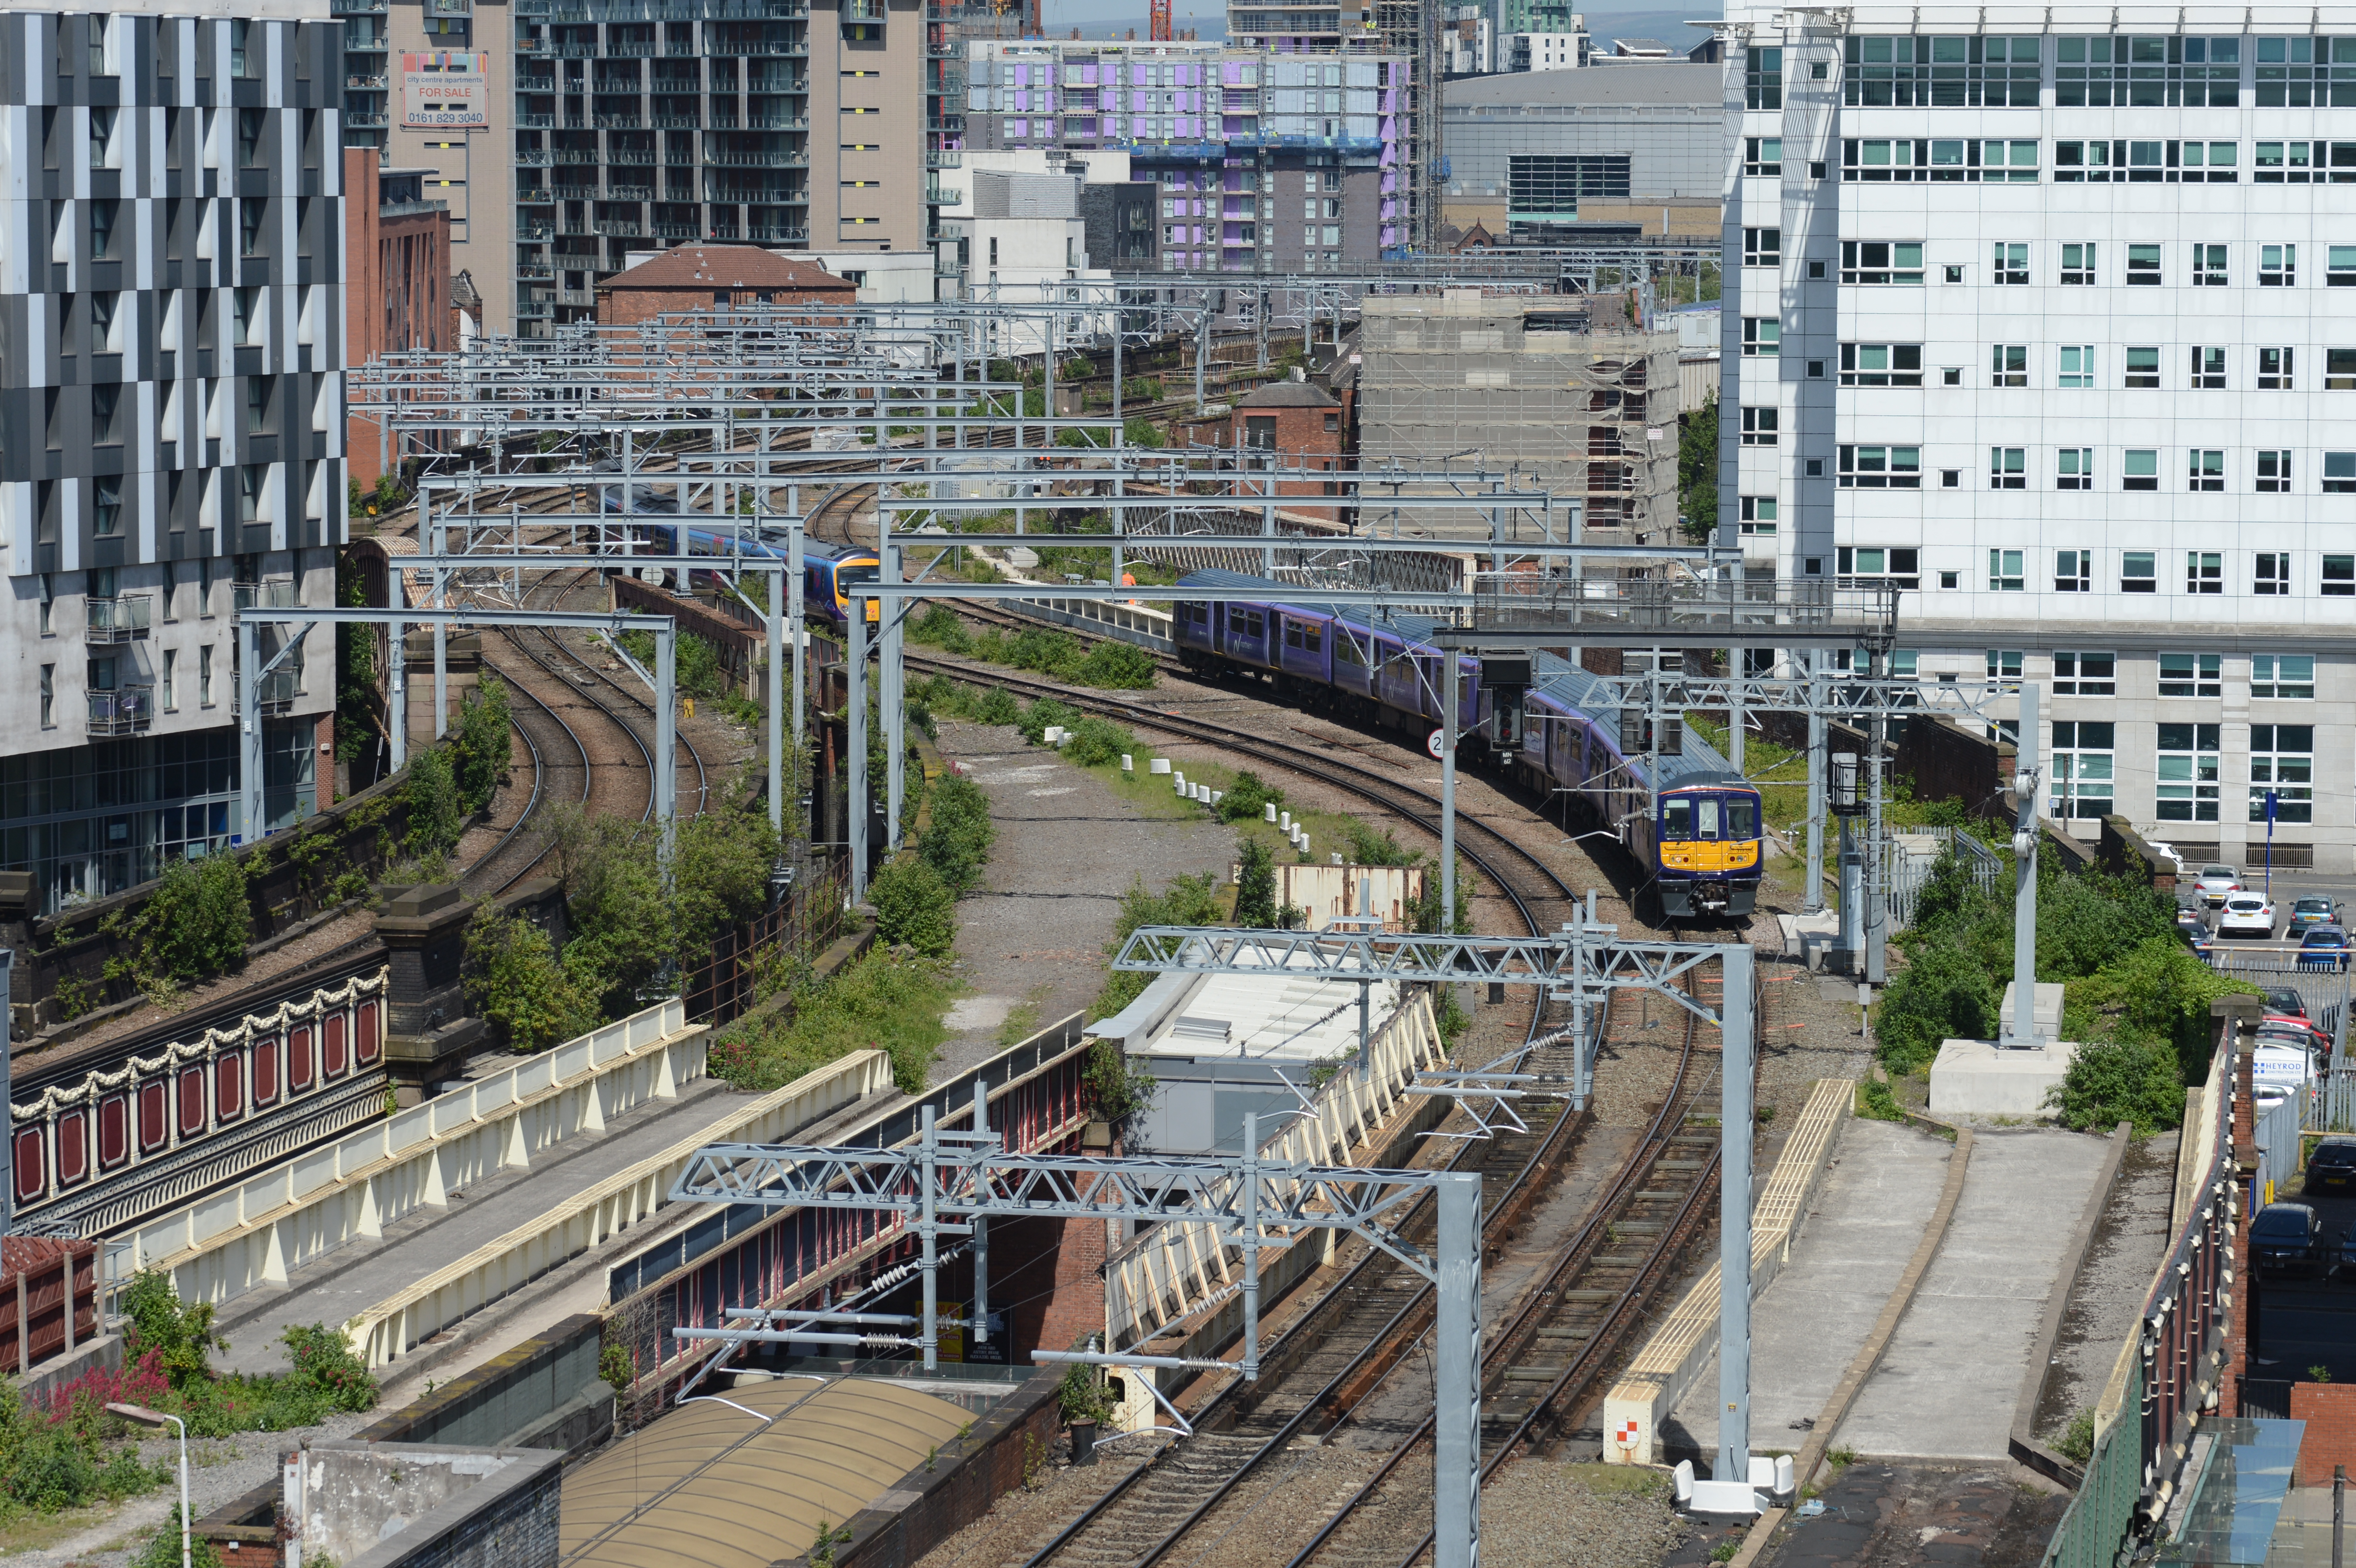 The approaches to Salford Central from the East,looking towards Manchester Victoria. Northern's 319386 approaches with a service to Liverpool Lime St running on the newly electrified route via the original Liverpool & Manchester railway.